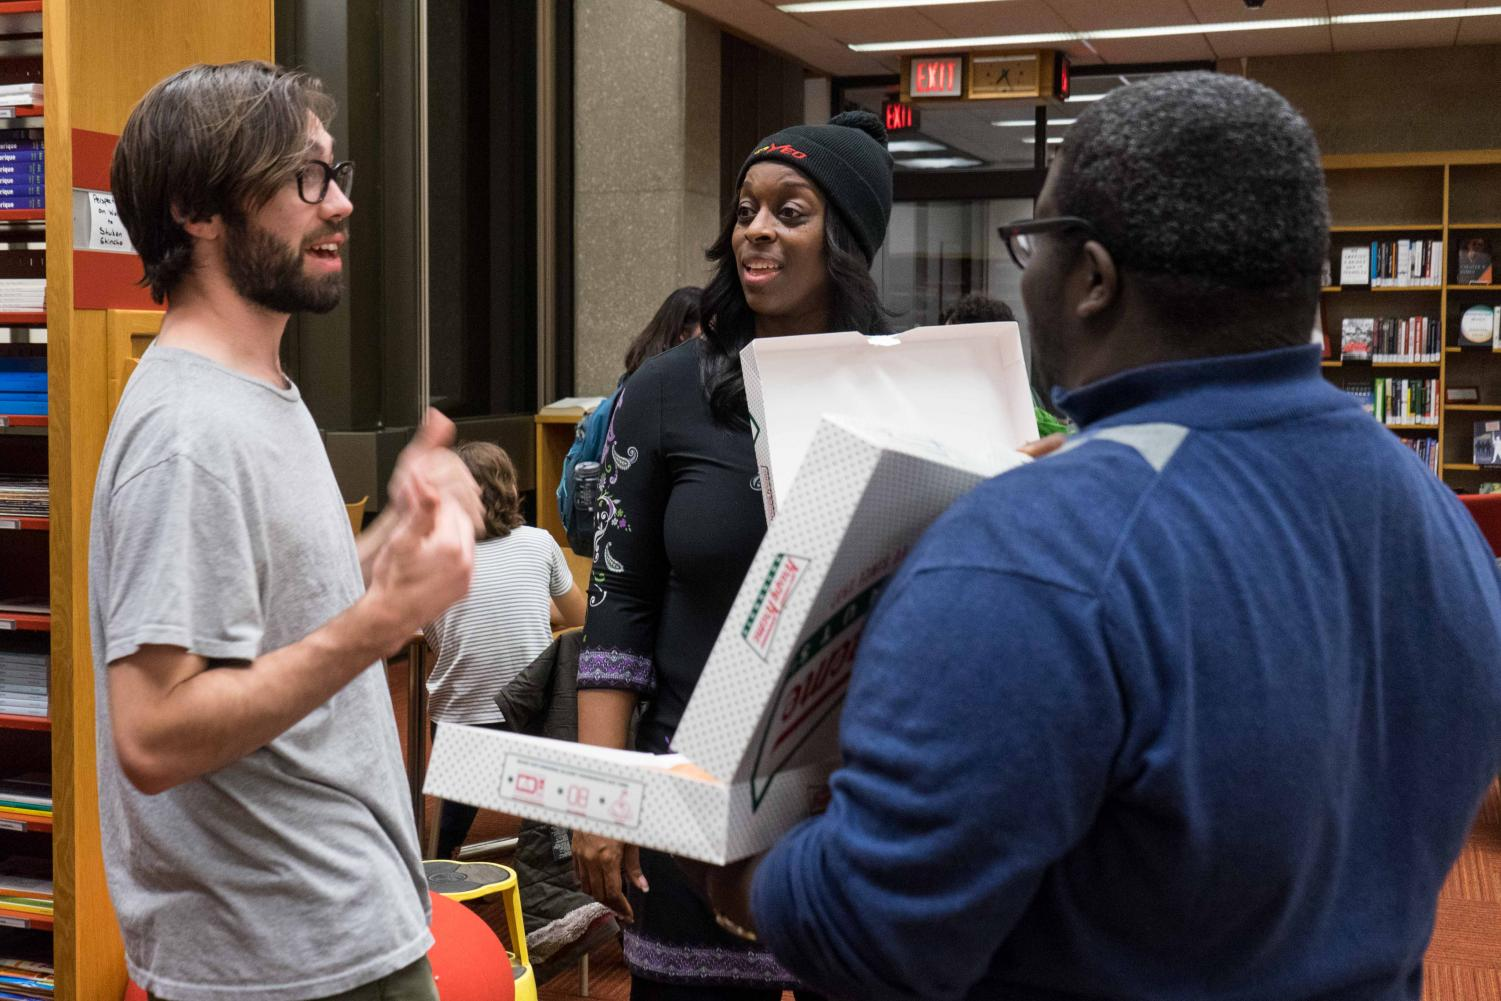 College senior Paddy McCabe discusses a survey he took on his desired campus improvements with Student Senate Vice Chair Kameron Dunbar and President Carmen Ambar. Students who participated received a free Krispy Kreme donut.